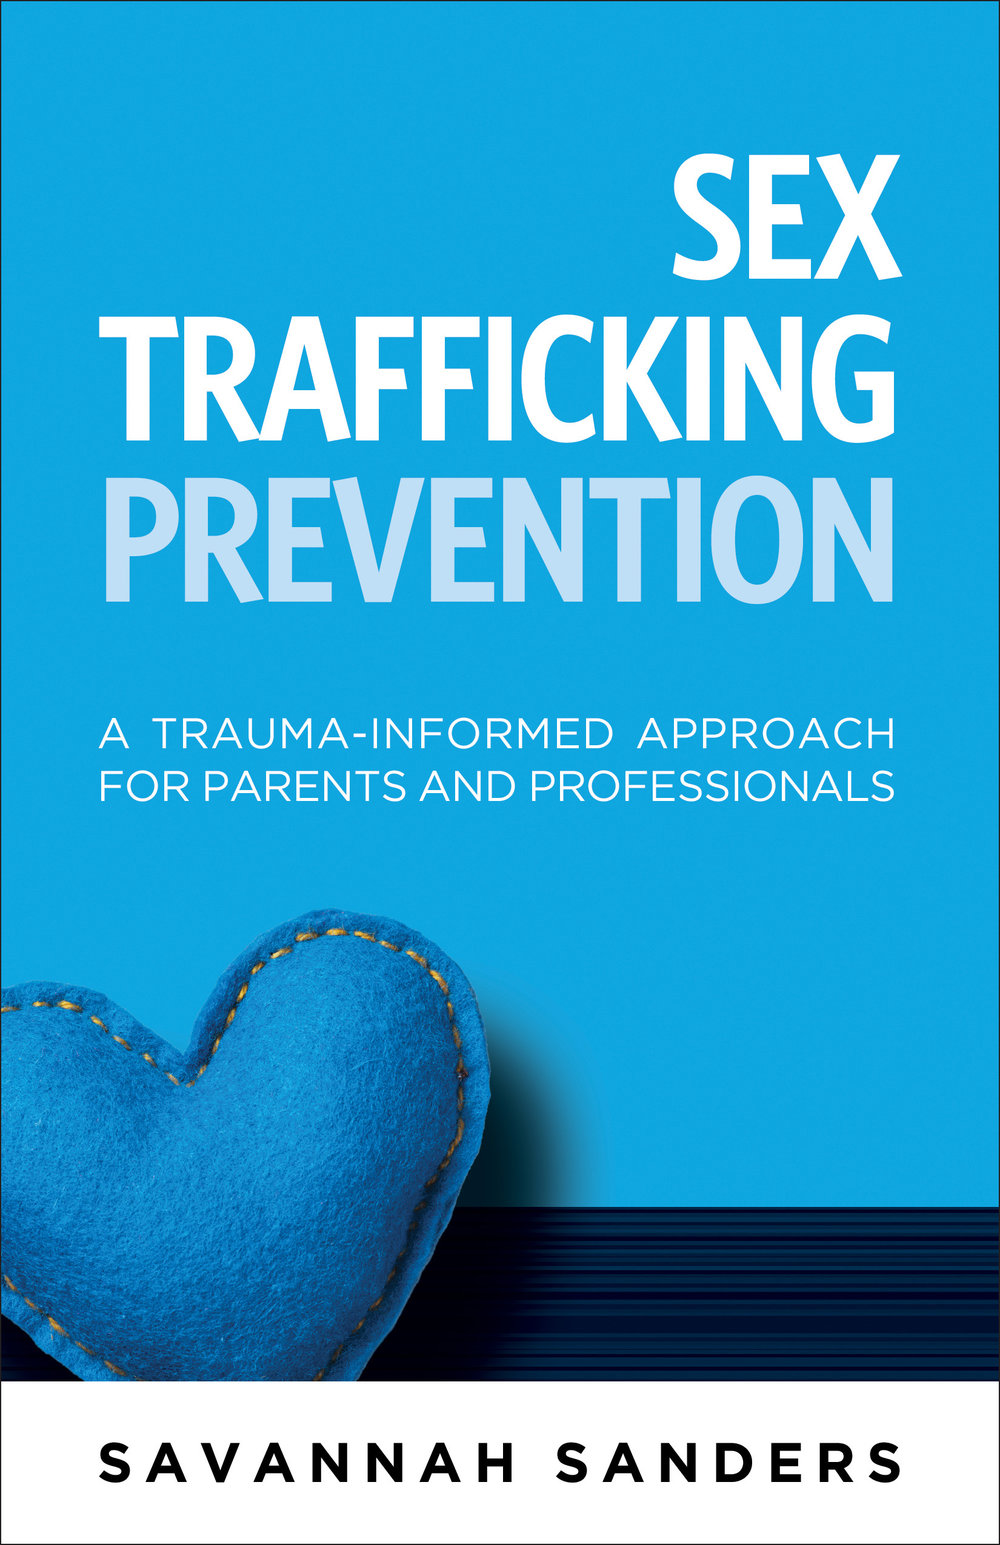 Savannah J. Sanders - Savannah J. Sanders is the author of Sex Trafficking Prevention: A Trauma-Informed Approach for Parents and Professionals and a leading advocate in the effort to stop sex trafficking worldwide. She teaches professionals to identify vulnerable youth and the steps to prevent them from being abused and/or trafficked. Savannah was the Human Trafficking Services Manager at the Sojourner Center in Arizona where she managed the SAFE (Safeguarding Adolescents From Exploitation) Action Project to help combat child sex trafficking, an initiative of The Sandra Day O'Connor Institute. Sanders shares her compelling story of abuse and recovery from trafficking as a source of inspiration and motivation for audiences everywhere. She resides in Arizona with her husband and children.